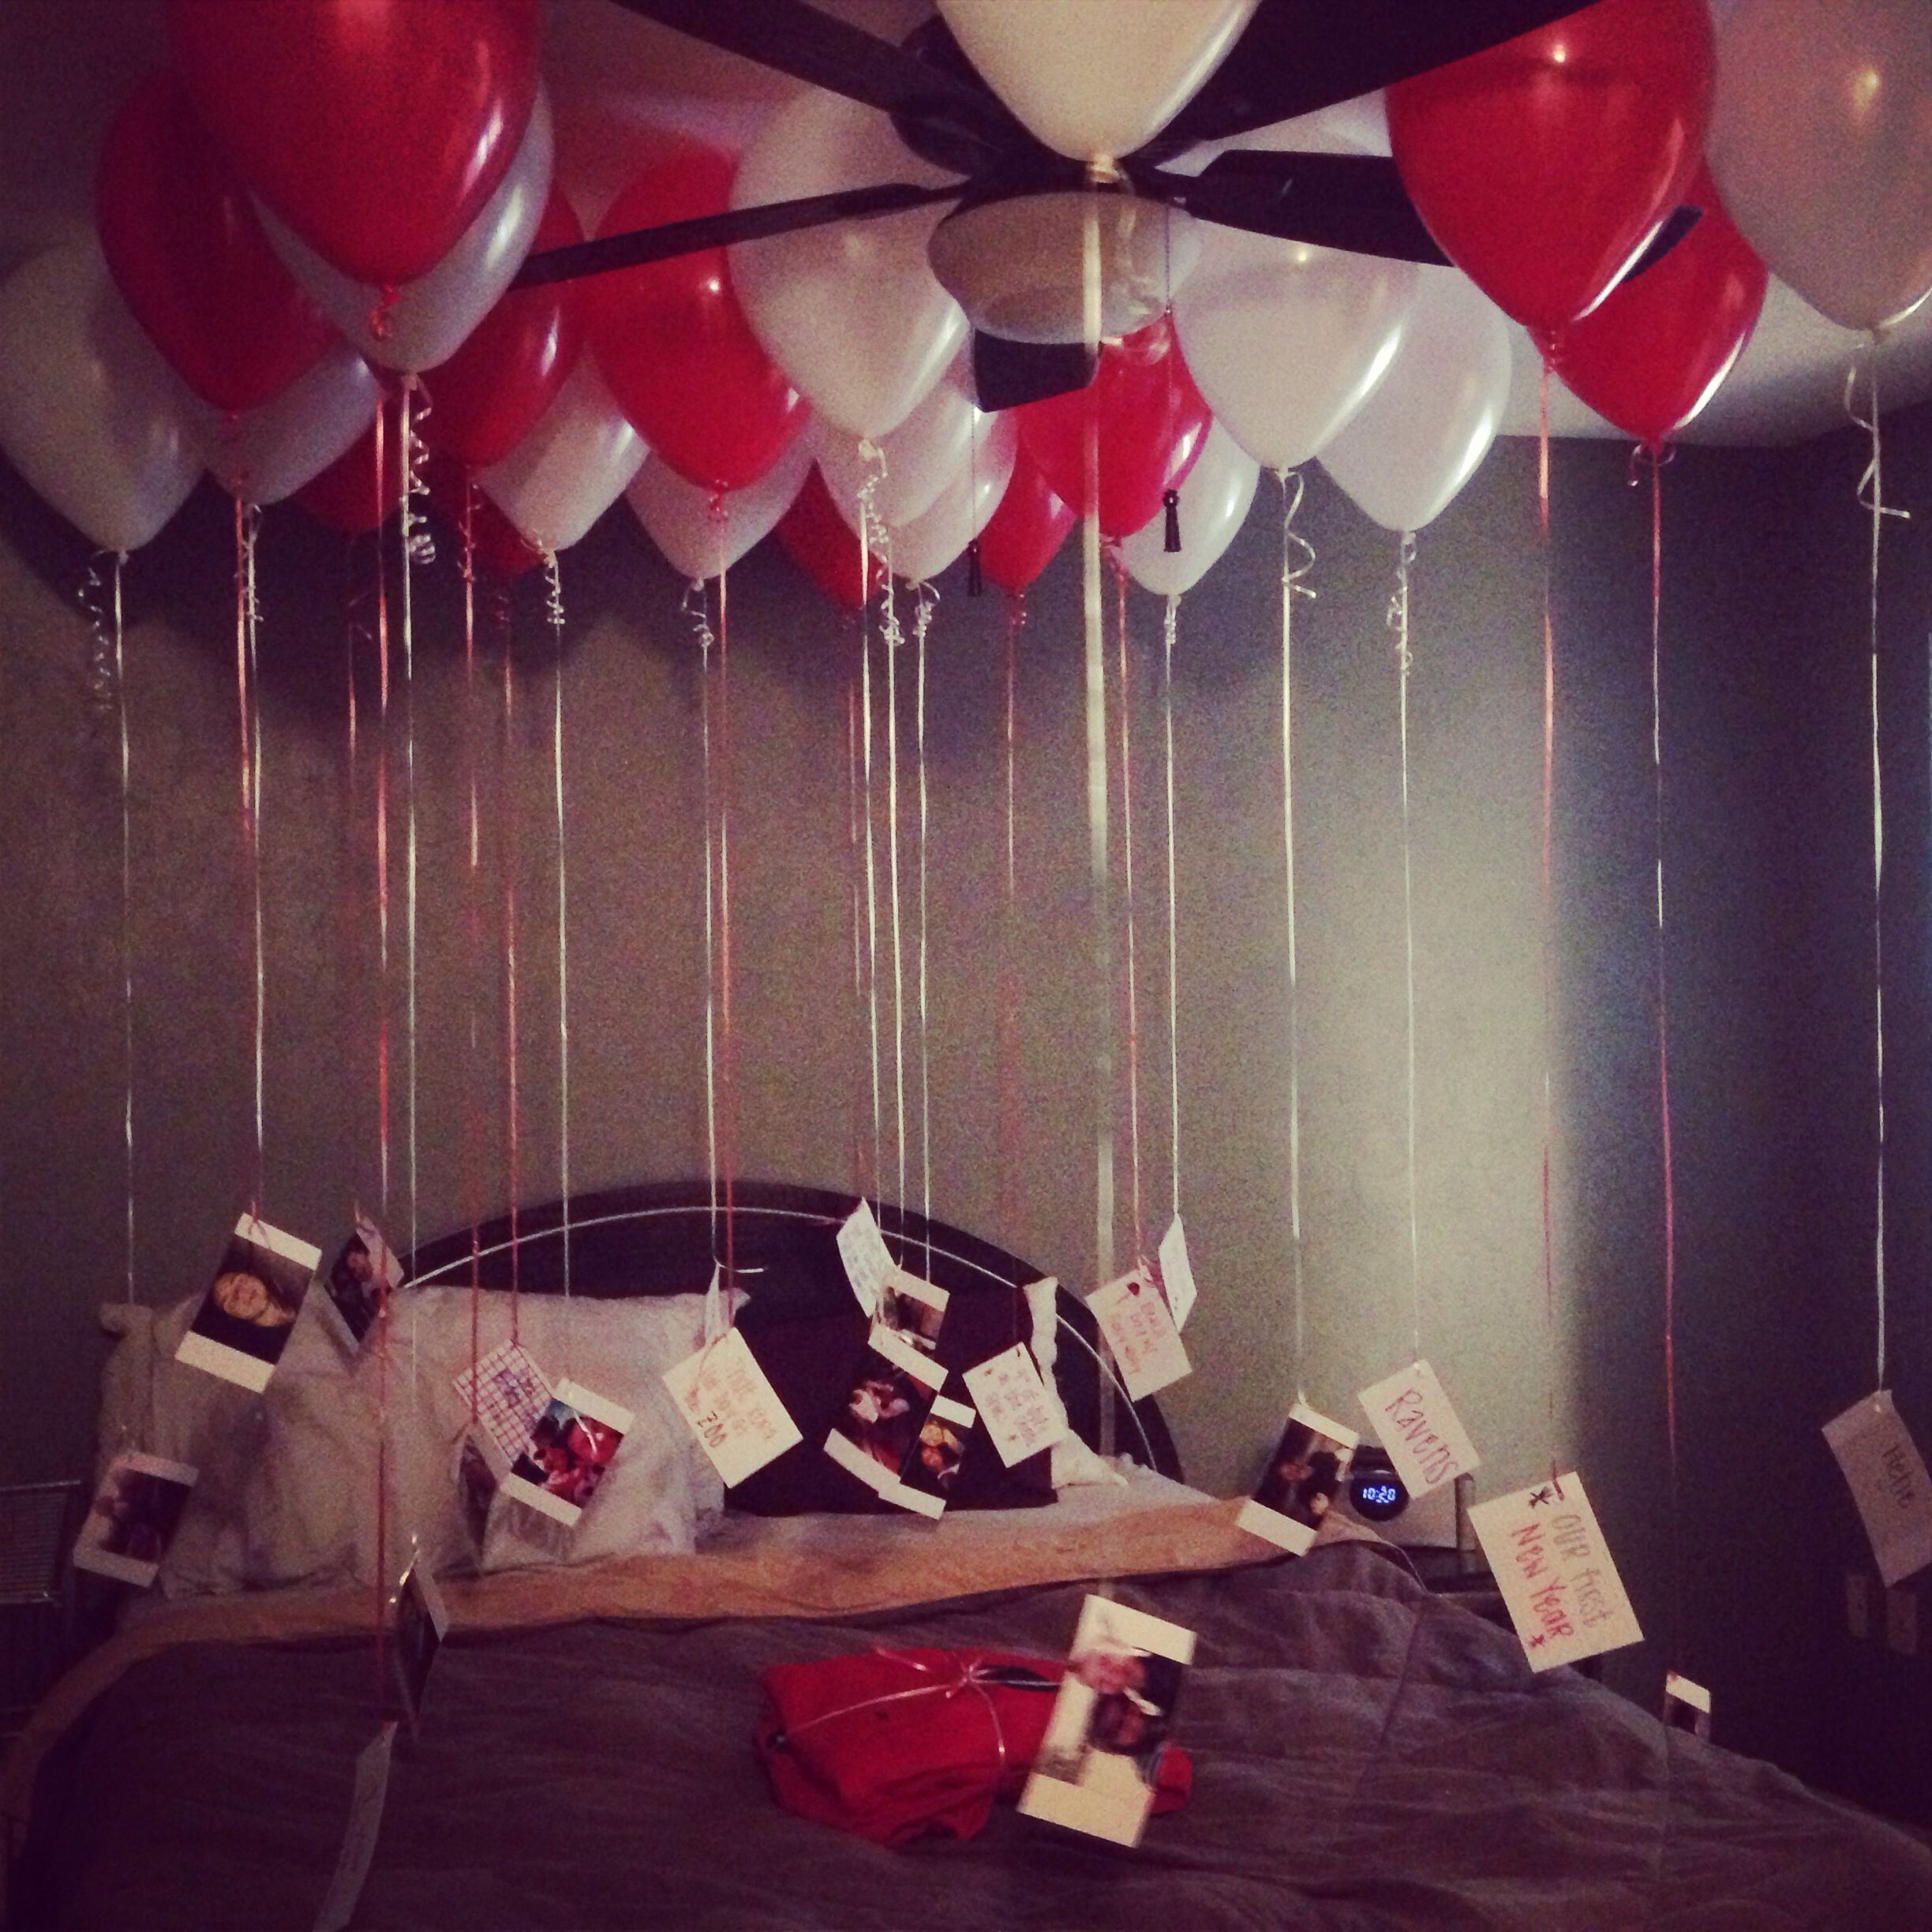 Pin By Mahlia Ford On Interesting Tips Valentines Party Decor Valentines Day Decorations Valentines Bedroom